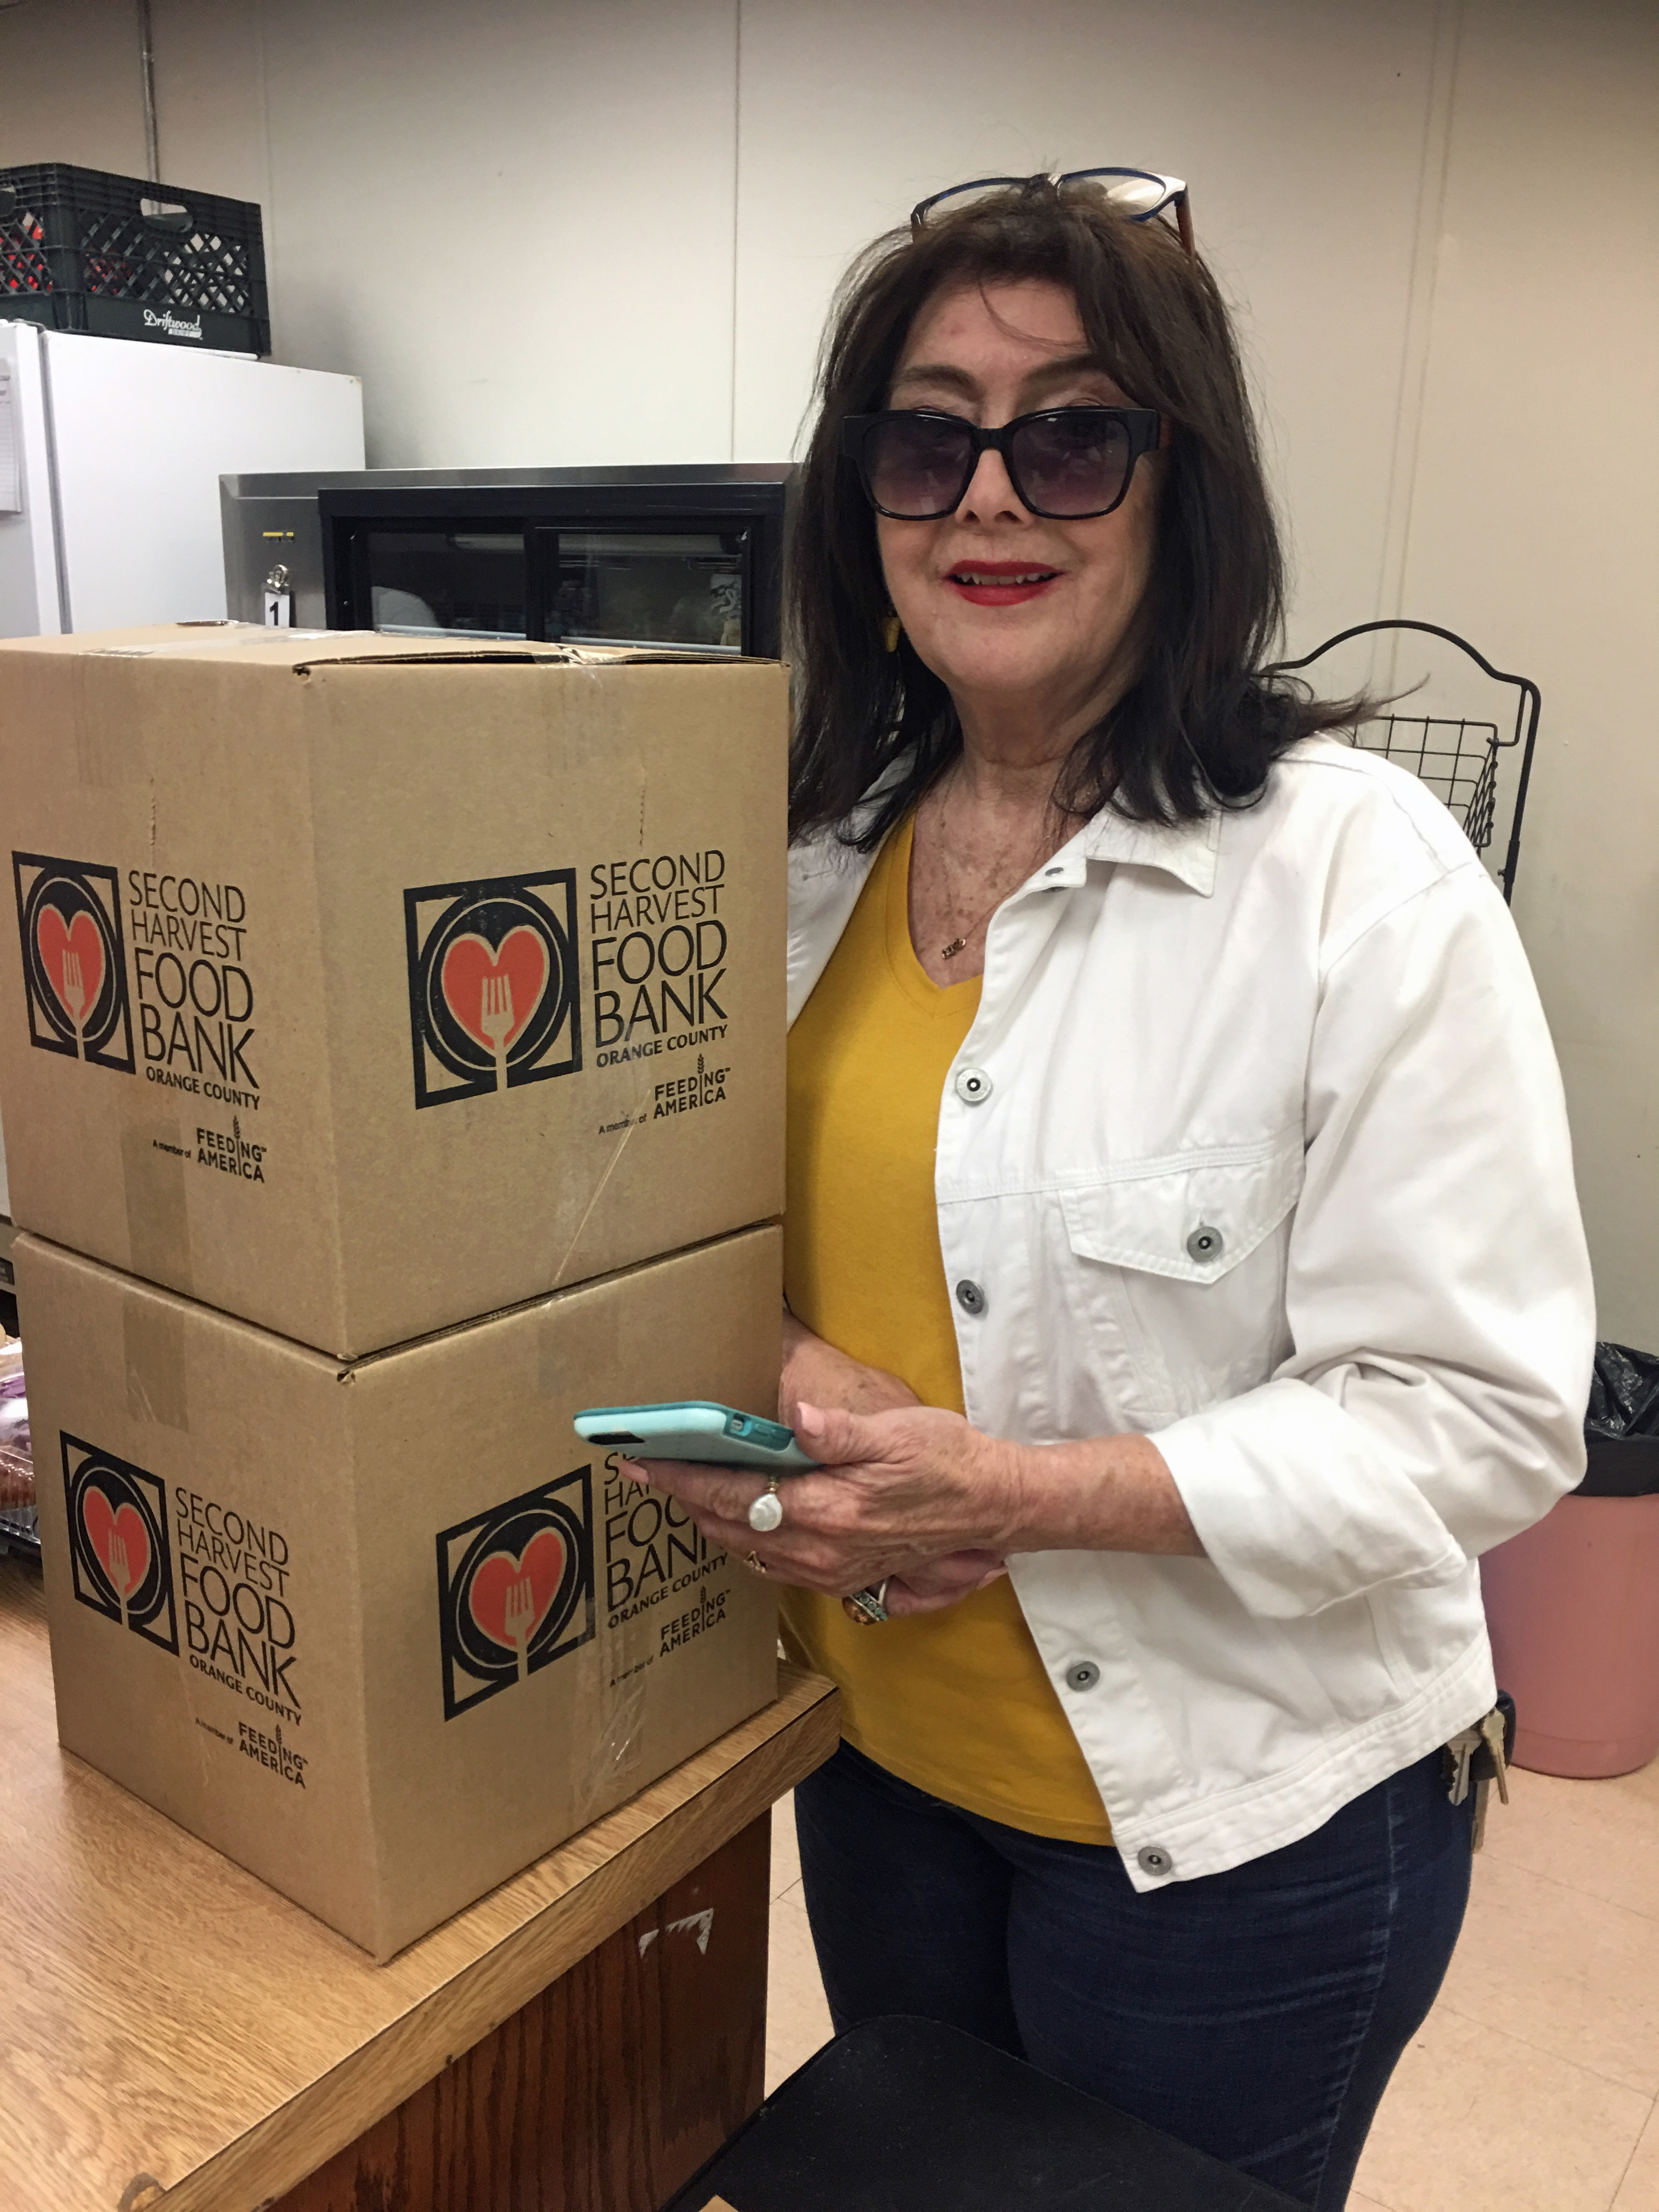 Rose lifts donated food boxes